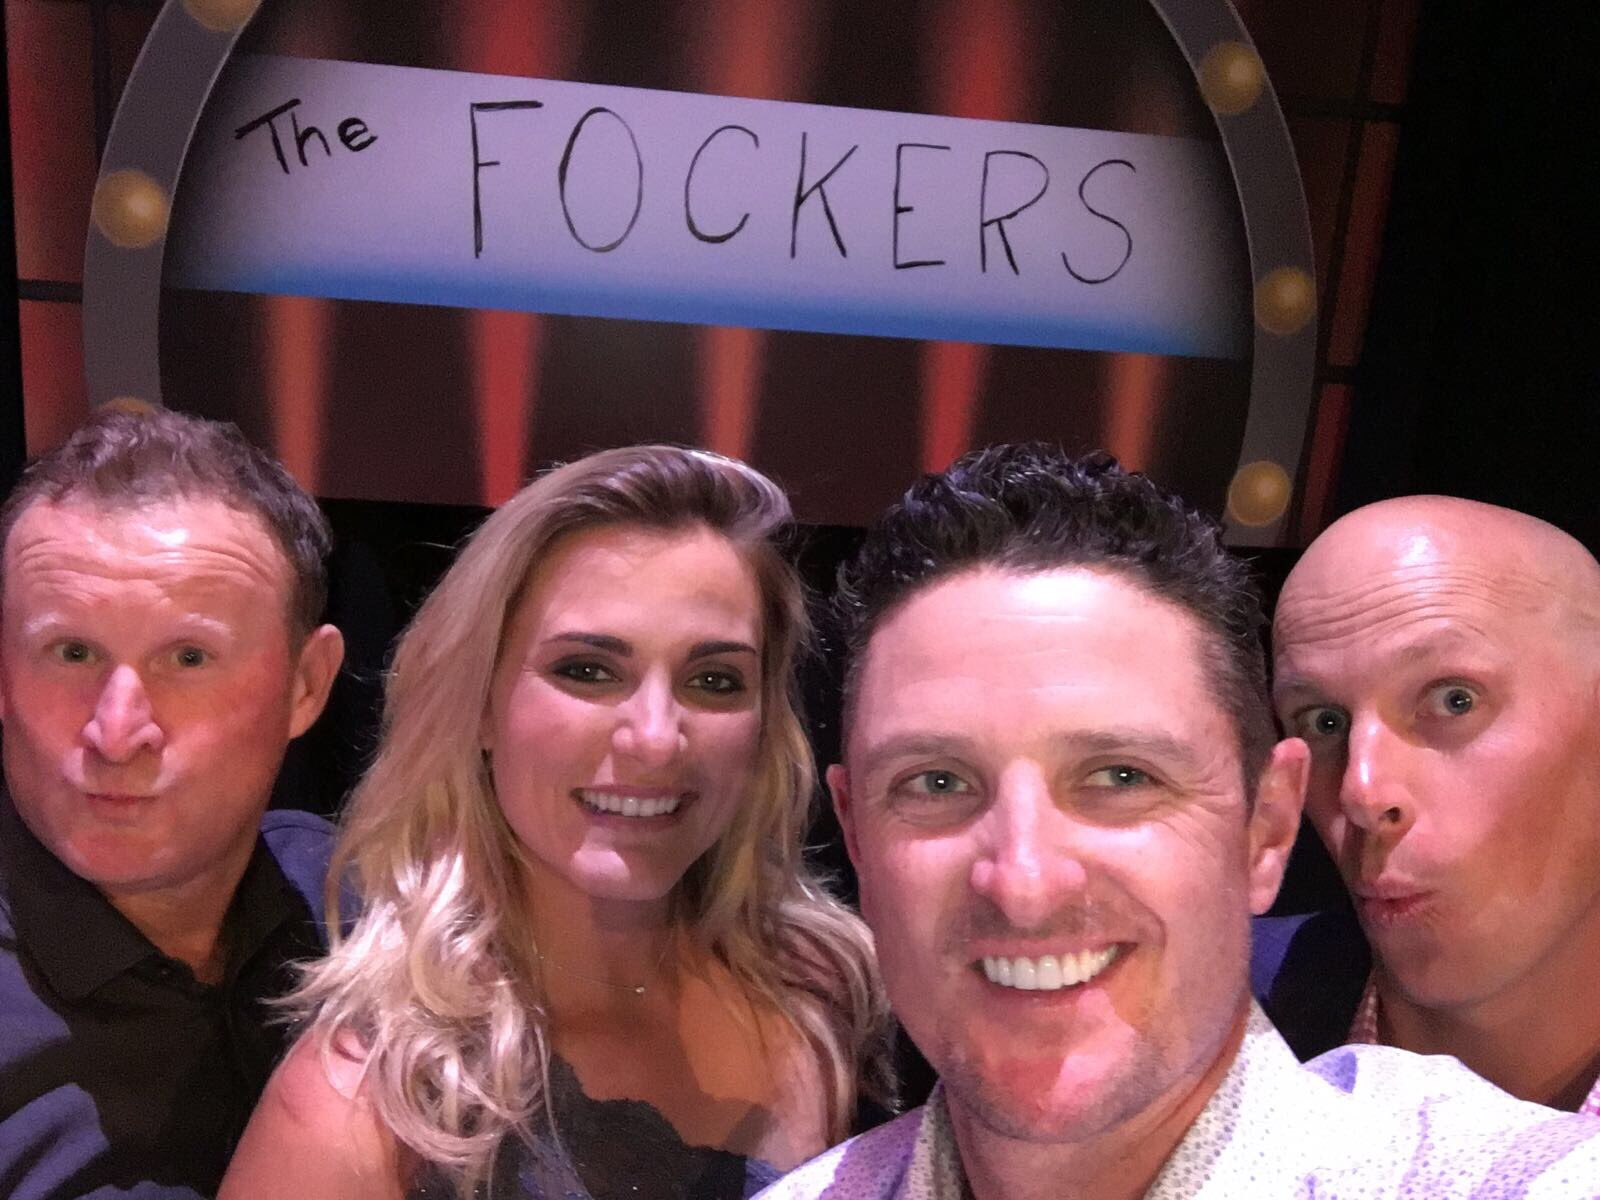 Thumbnail for Meet the Fockers - Thompson Competes Alongside PGA Tour Pros at Zurich Classic